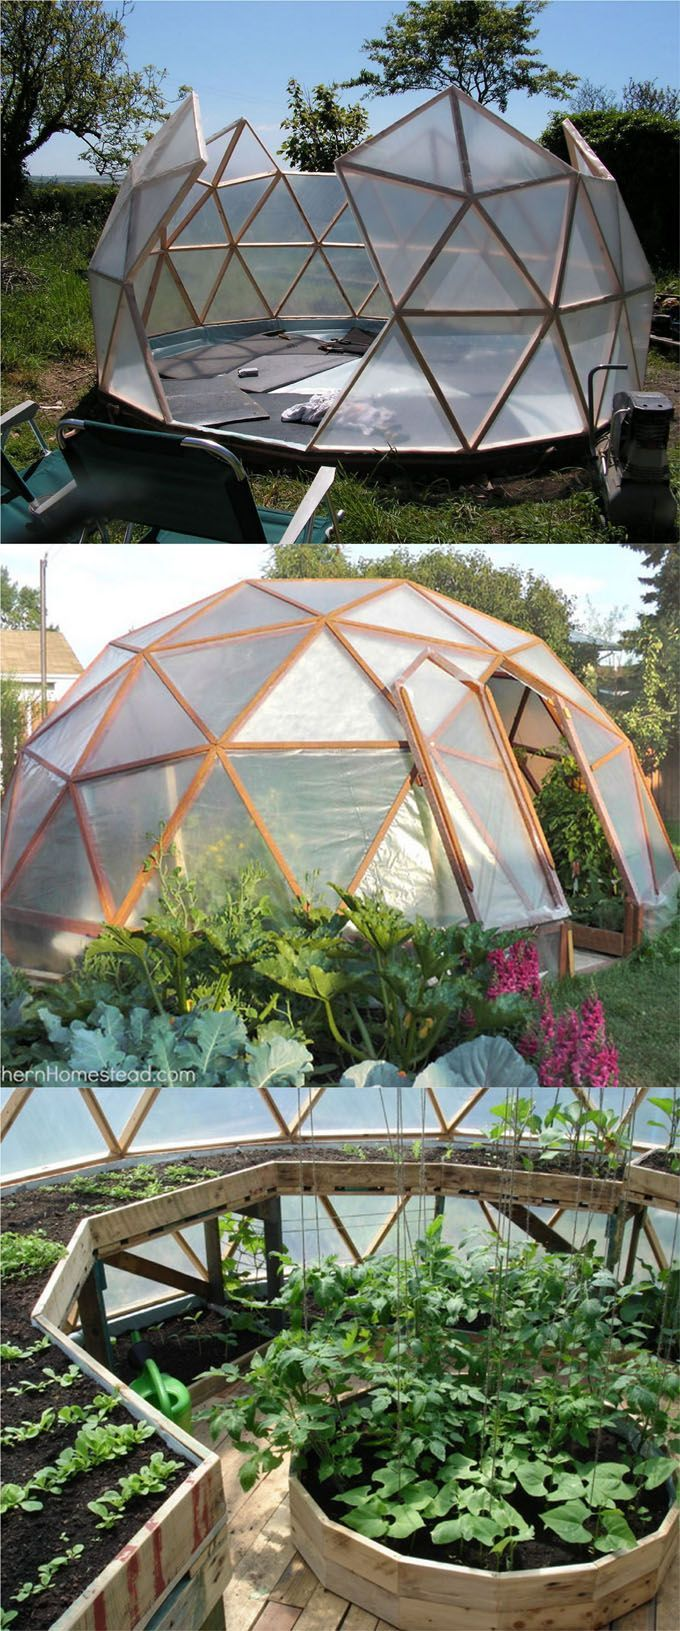 21 DIY Greenhouses with Nice Tutorials: Final assortment of THE BEST tutoria…